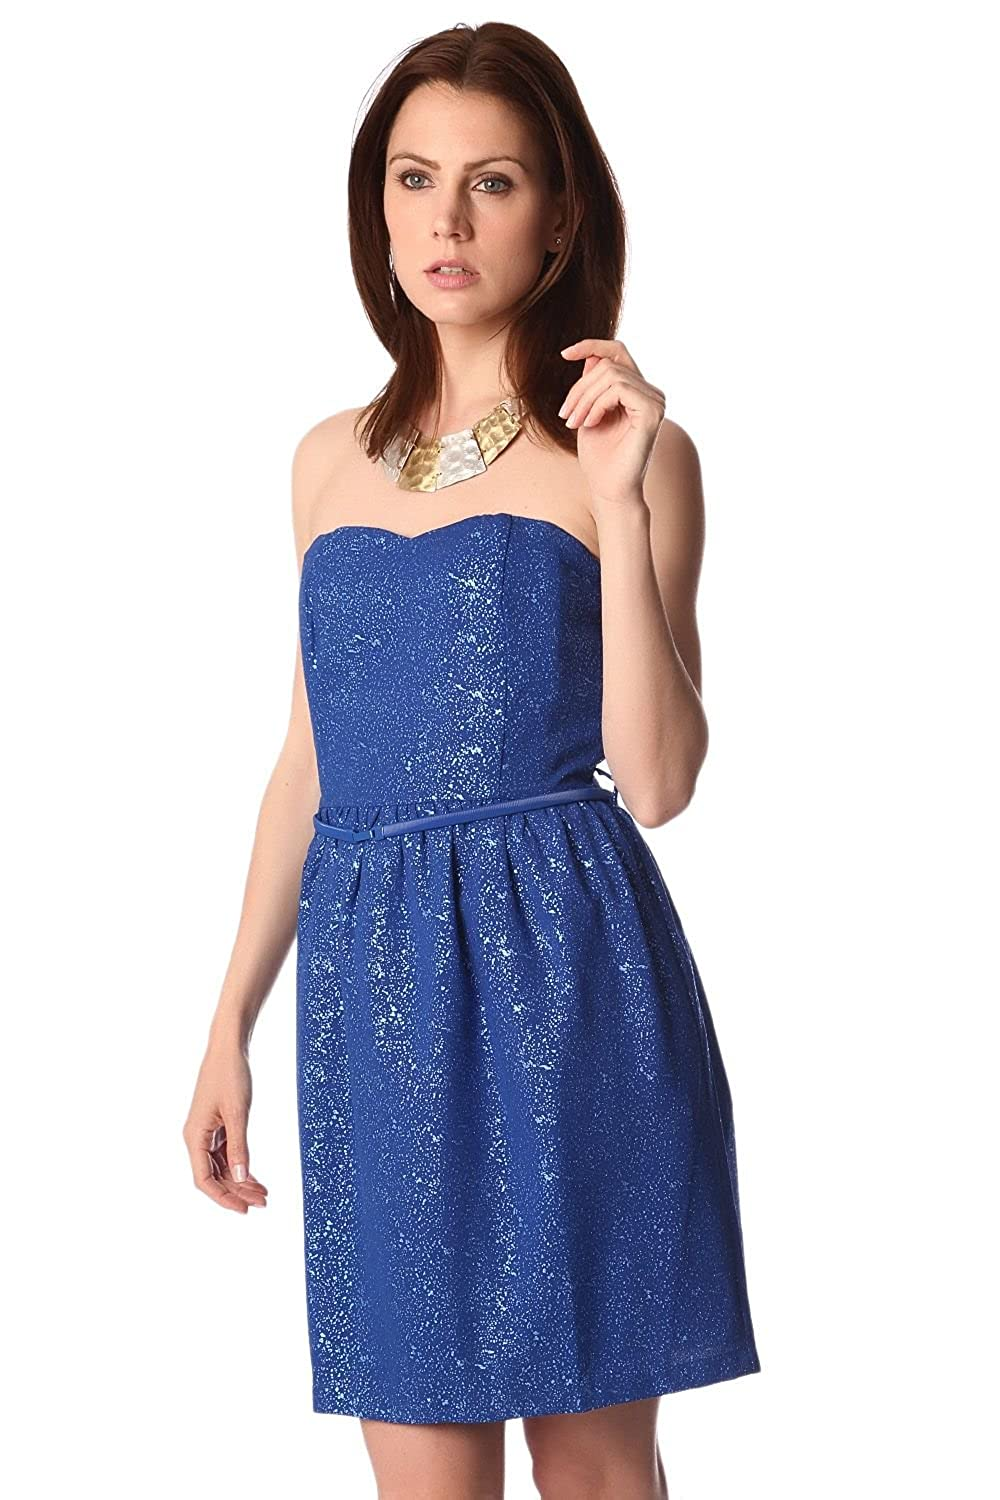 Q2 Women's Electric blue strapless party dress